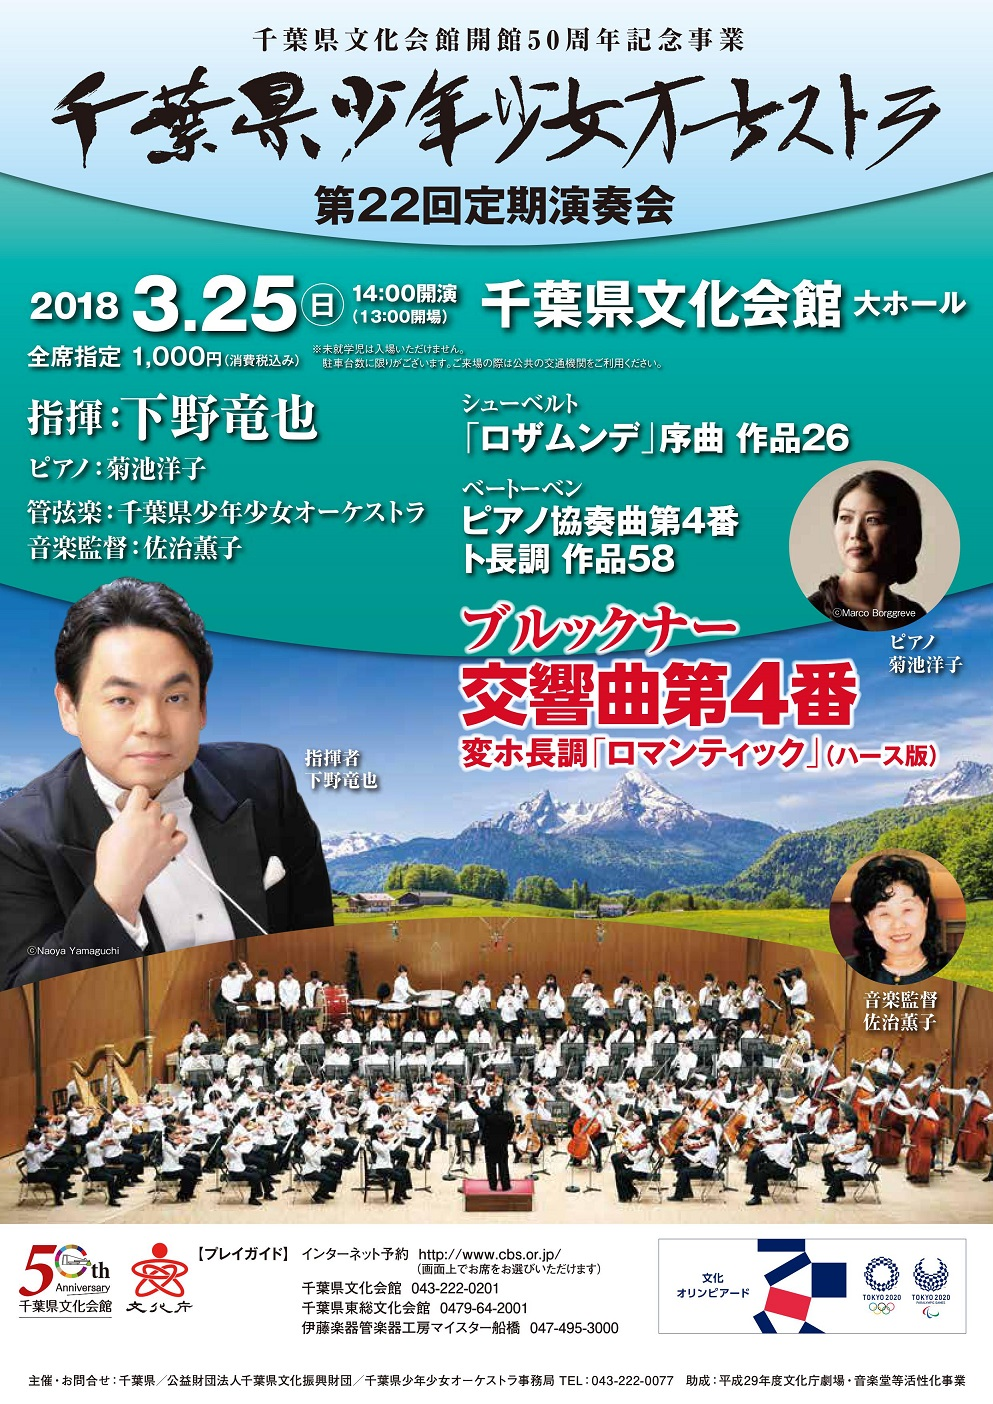 This week's concert (19 March – 25 March, 2018)